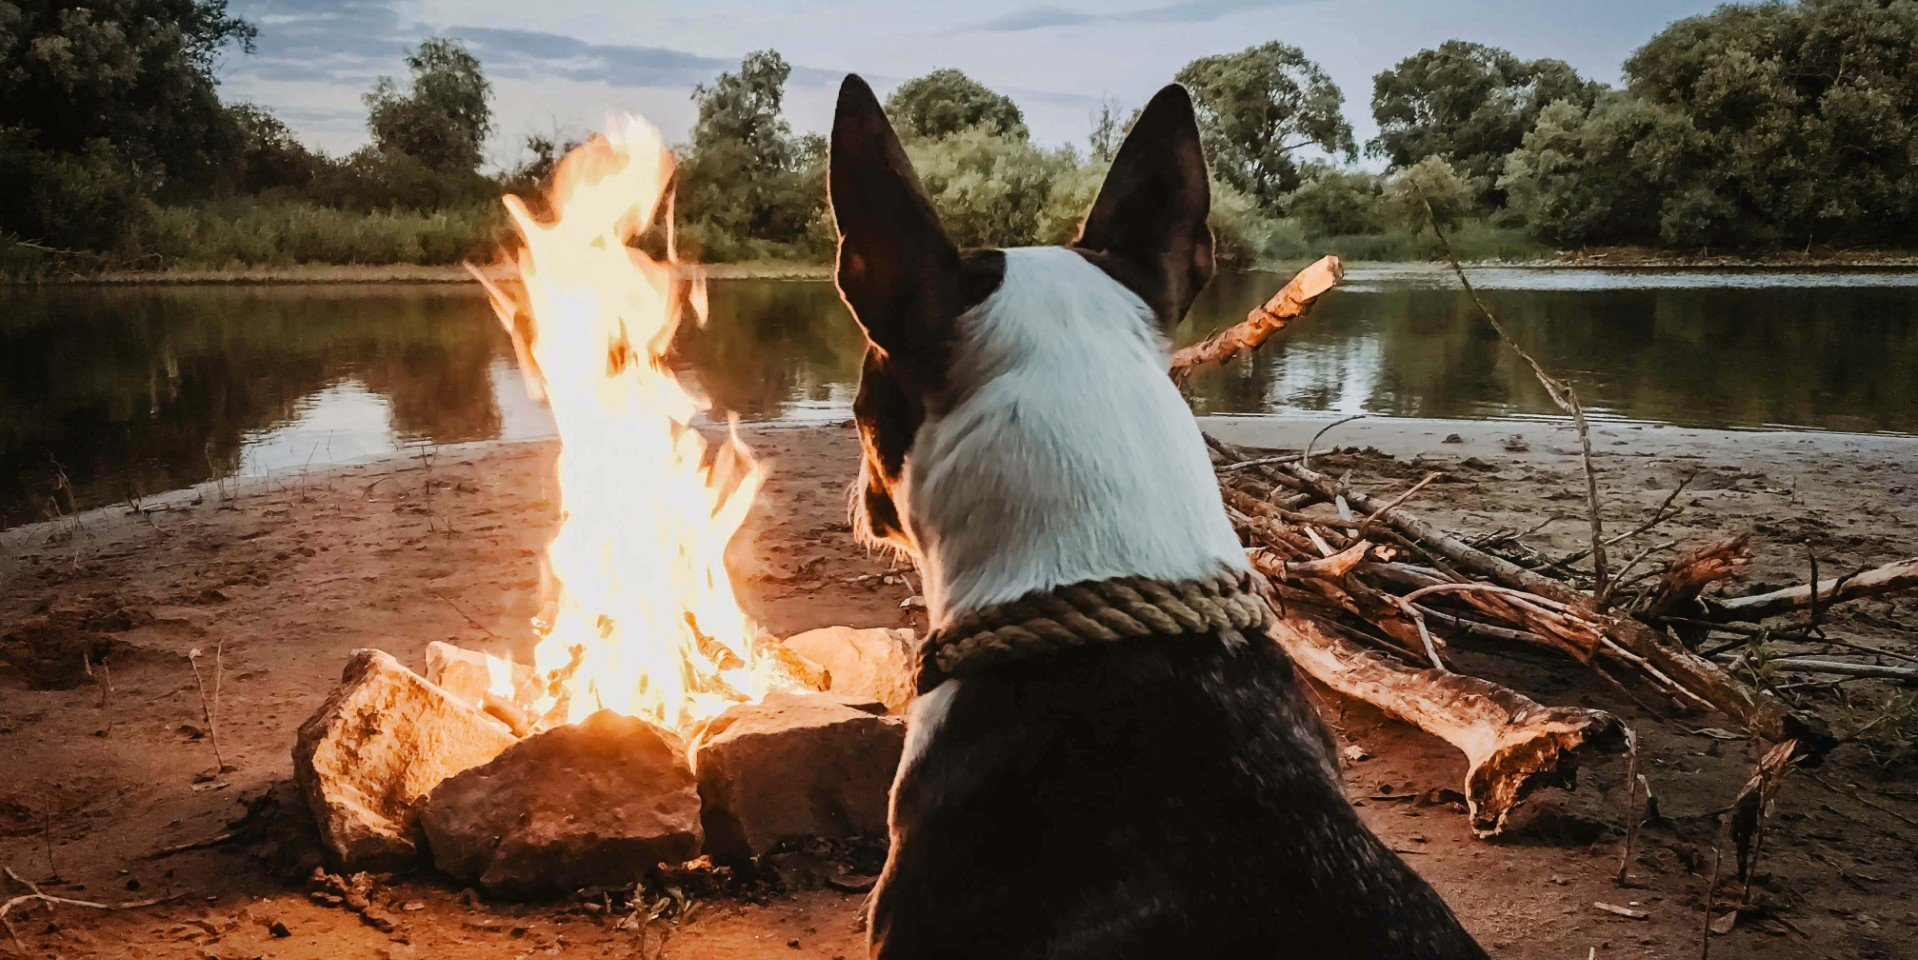 5 best tents for camping with dogs in 2020: + FAQ's